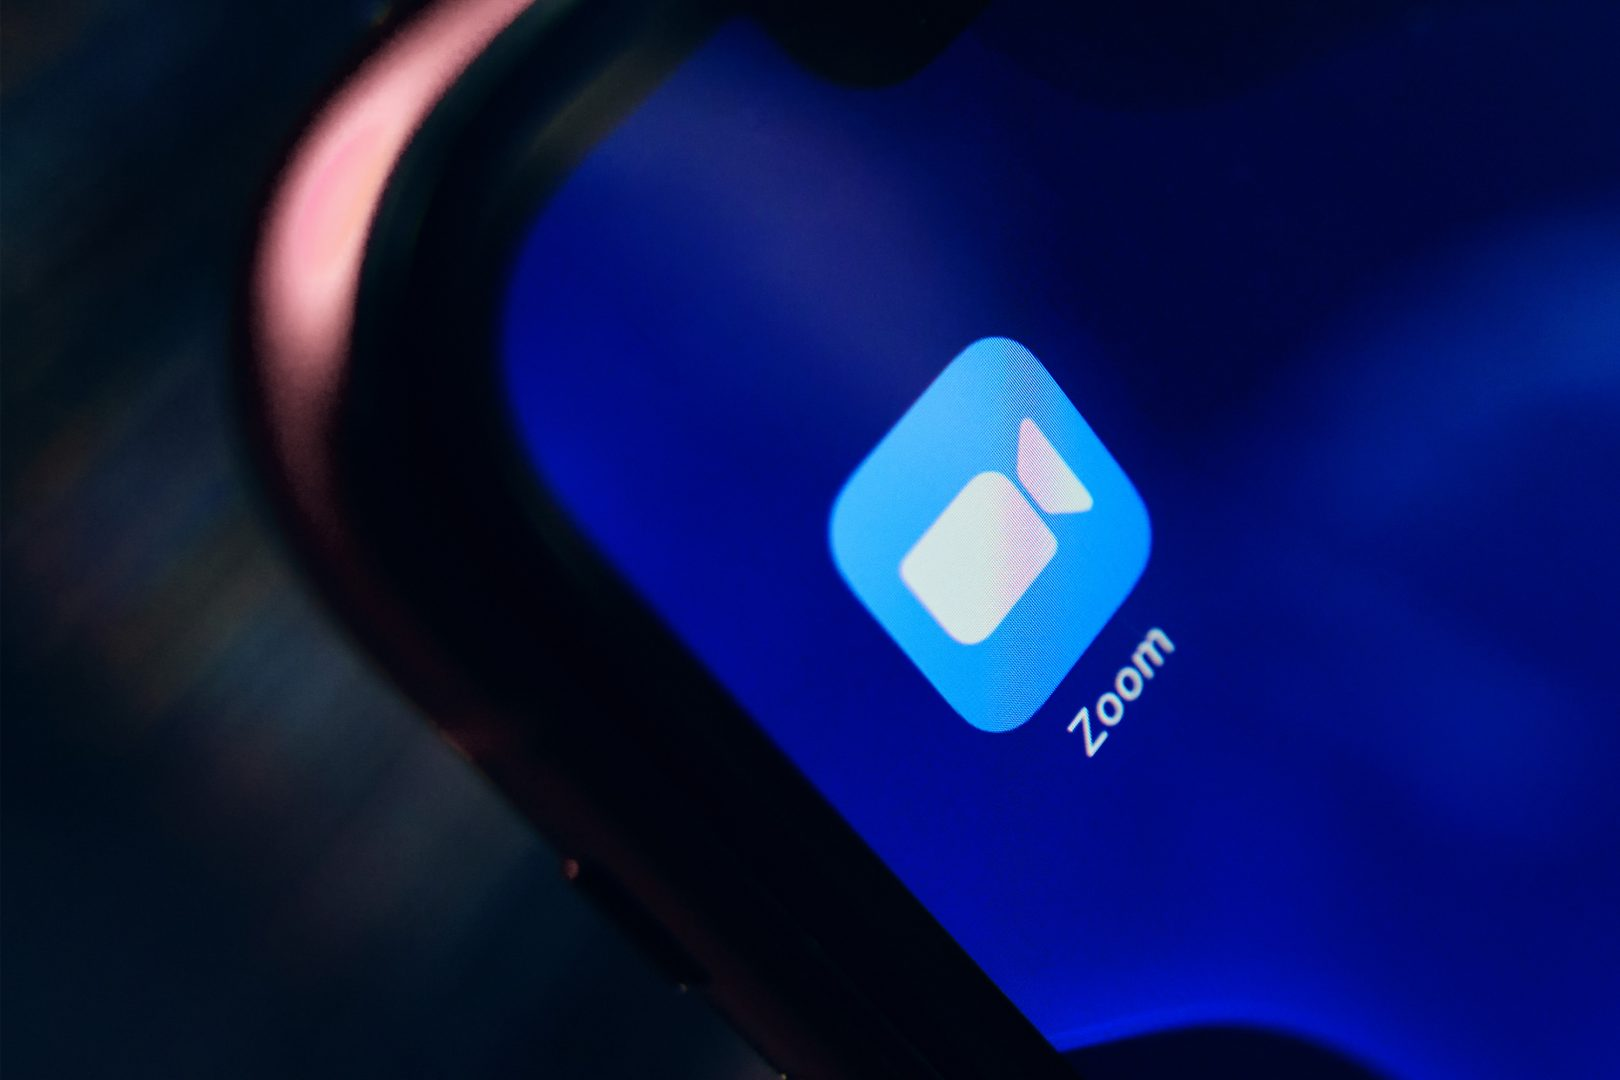 The app icon for the video-conferencing app Zoom is featured on a phone screen held in the hand of an unknown person.